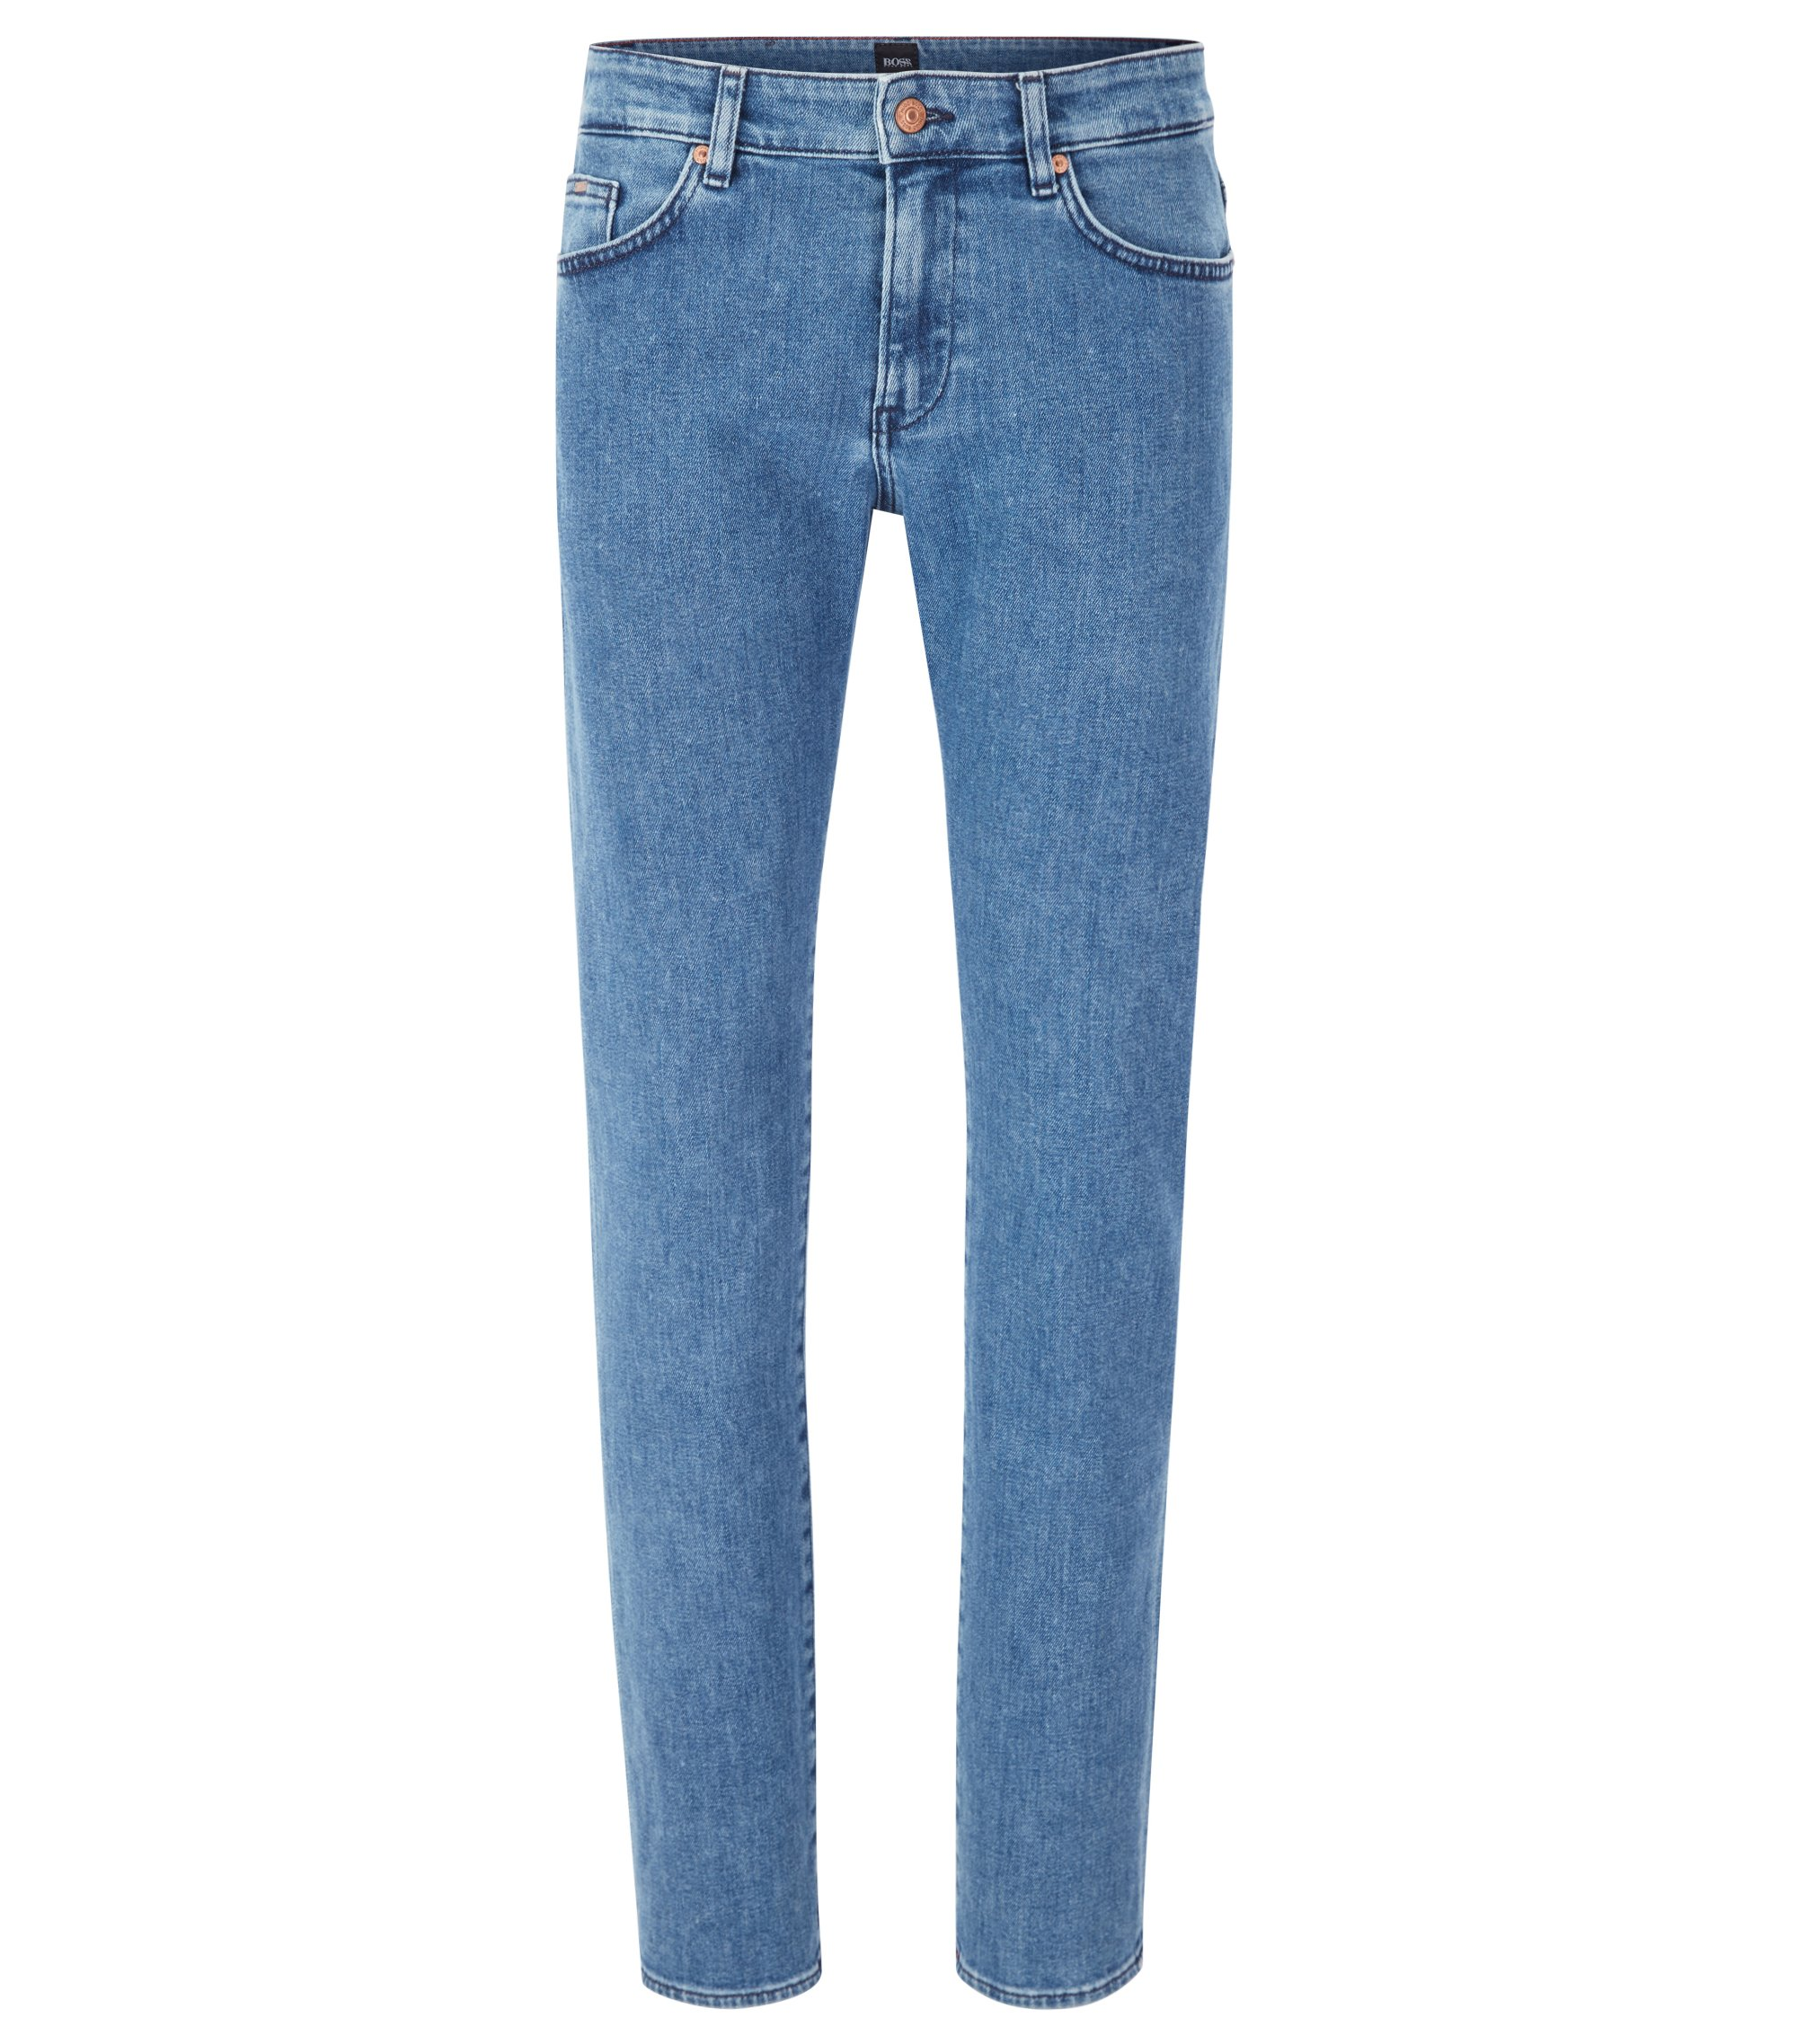 Jean Slim Fit en denim stretch bleu moyen, Bleu